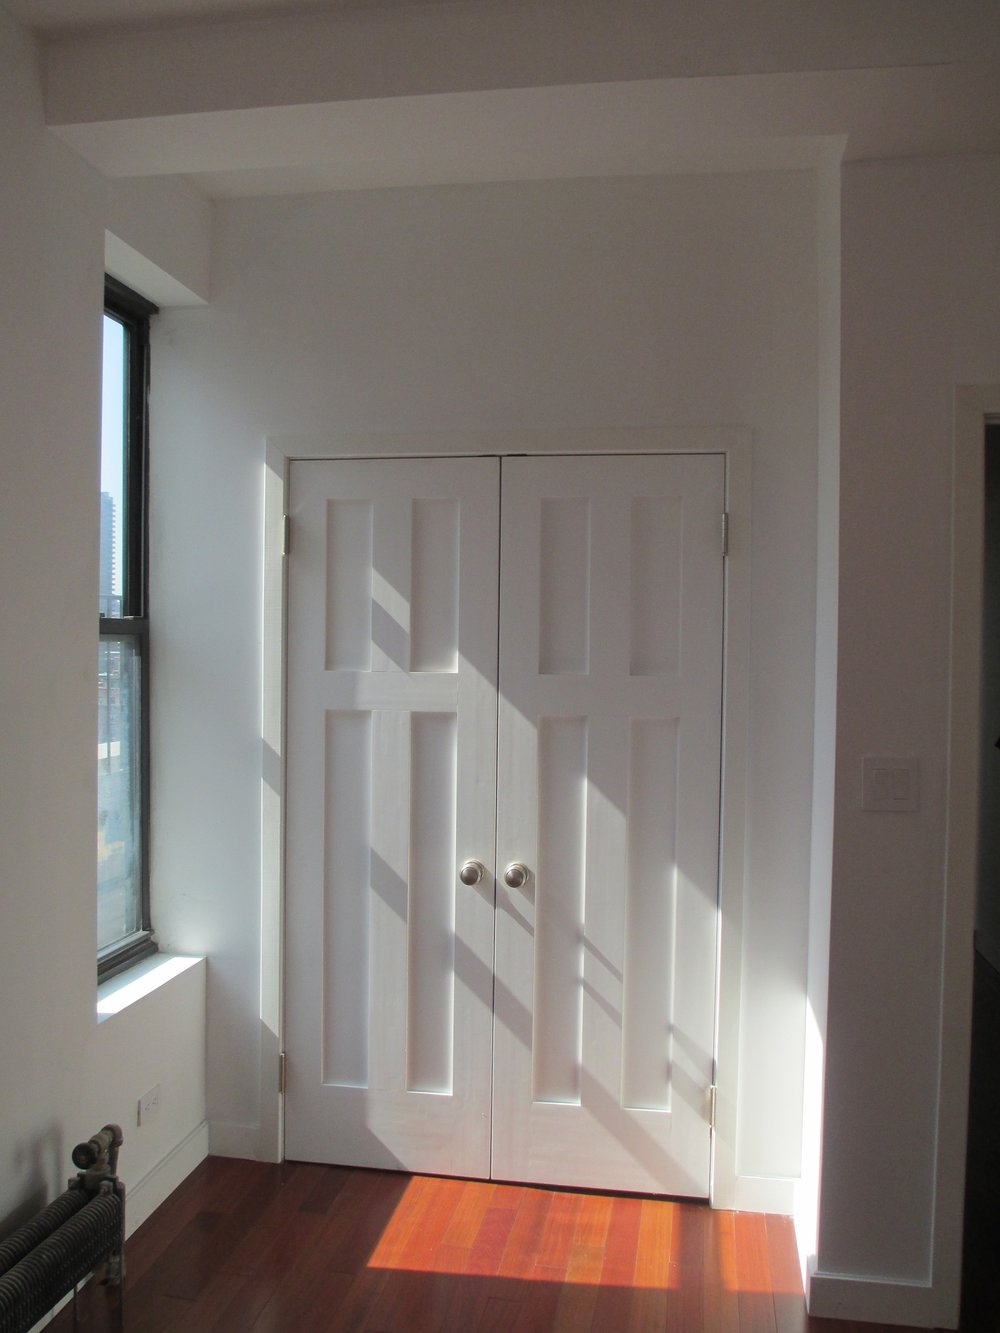 Penthouse Apartment Combination walkin closet.JPG